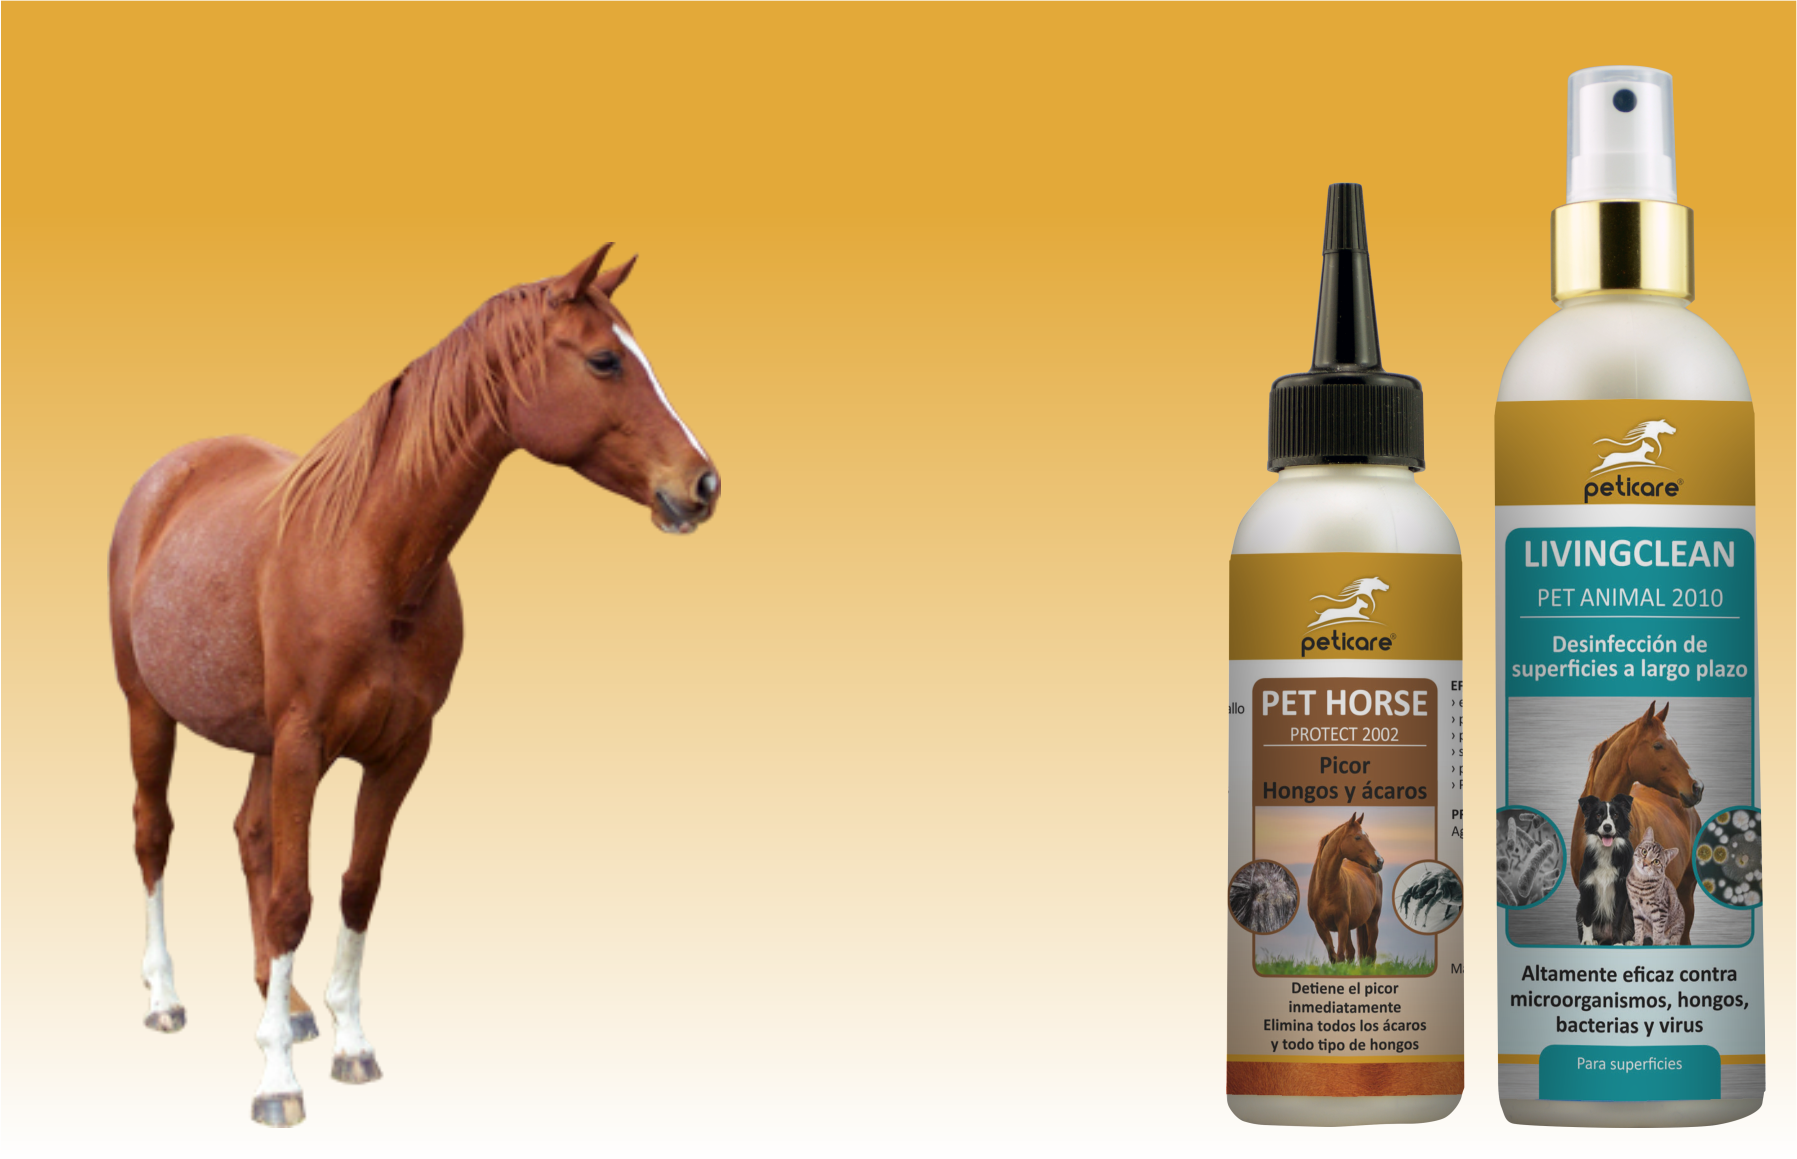 peticare SET Horse - Mites and disinfection